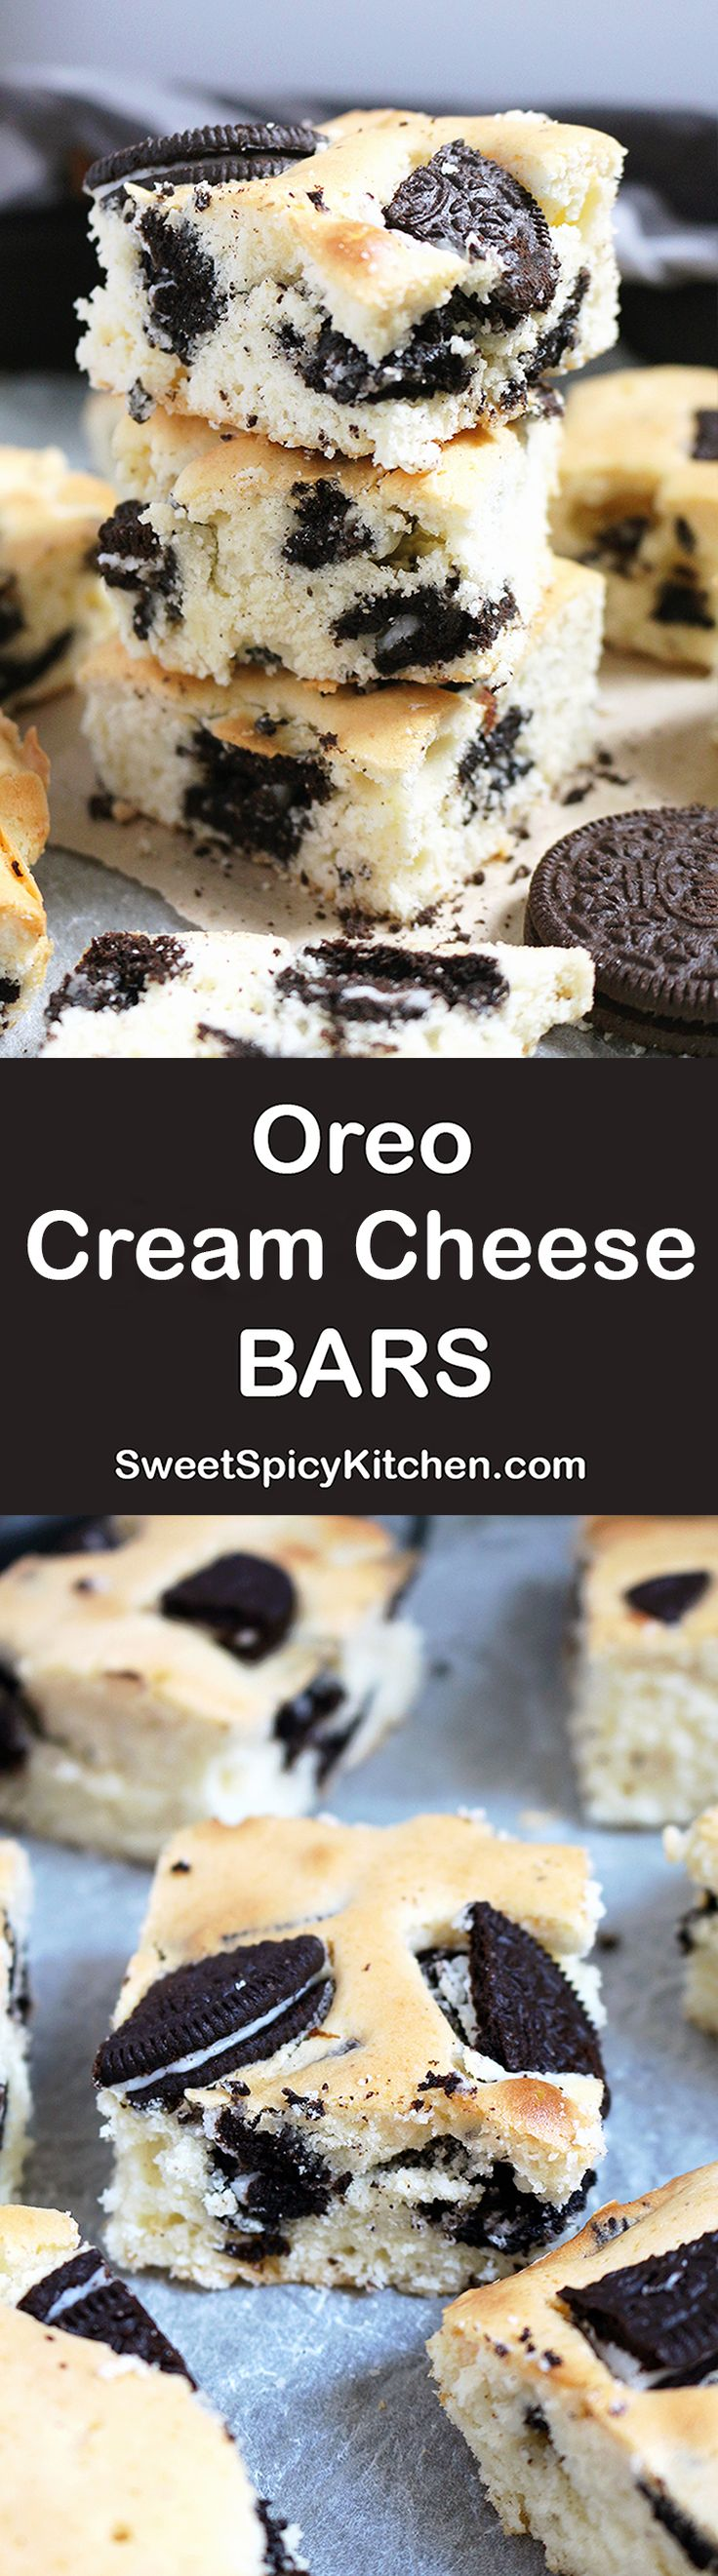 Oreo Cream Cheese Bars delicious bars made of Oreo cookies and cream cheese that I love. They are light and not too sweet, just perfect for my family and me